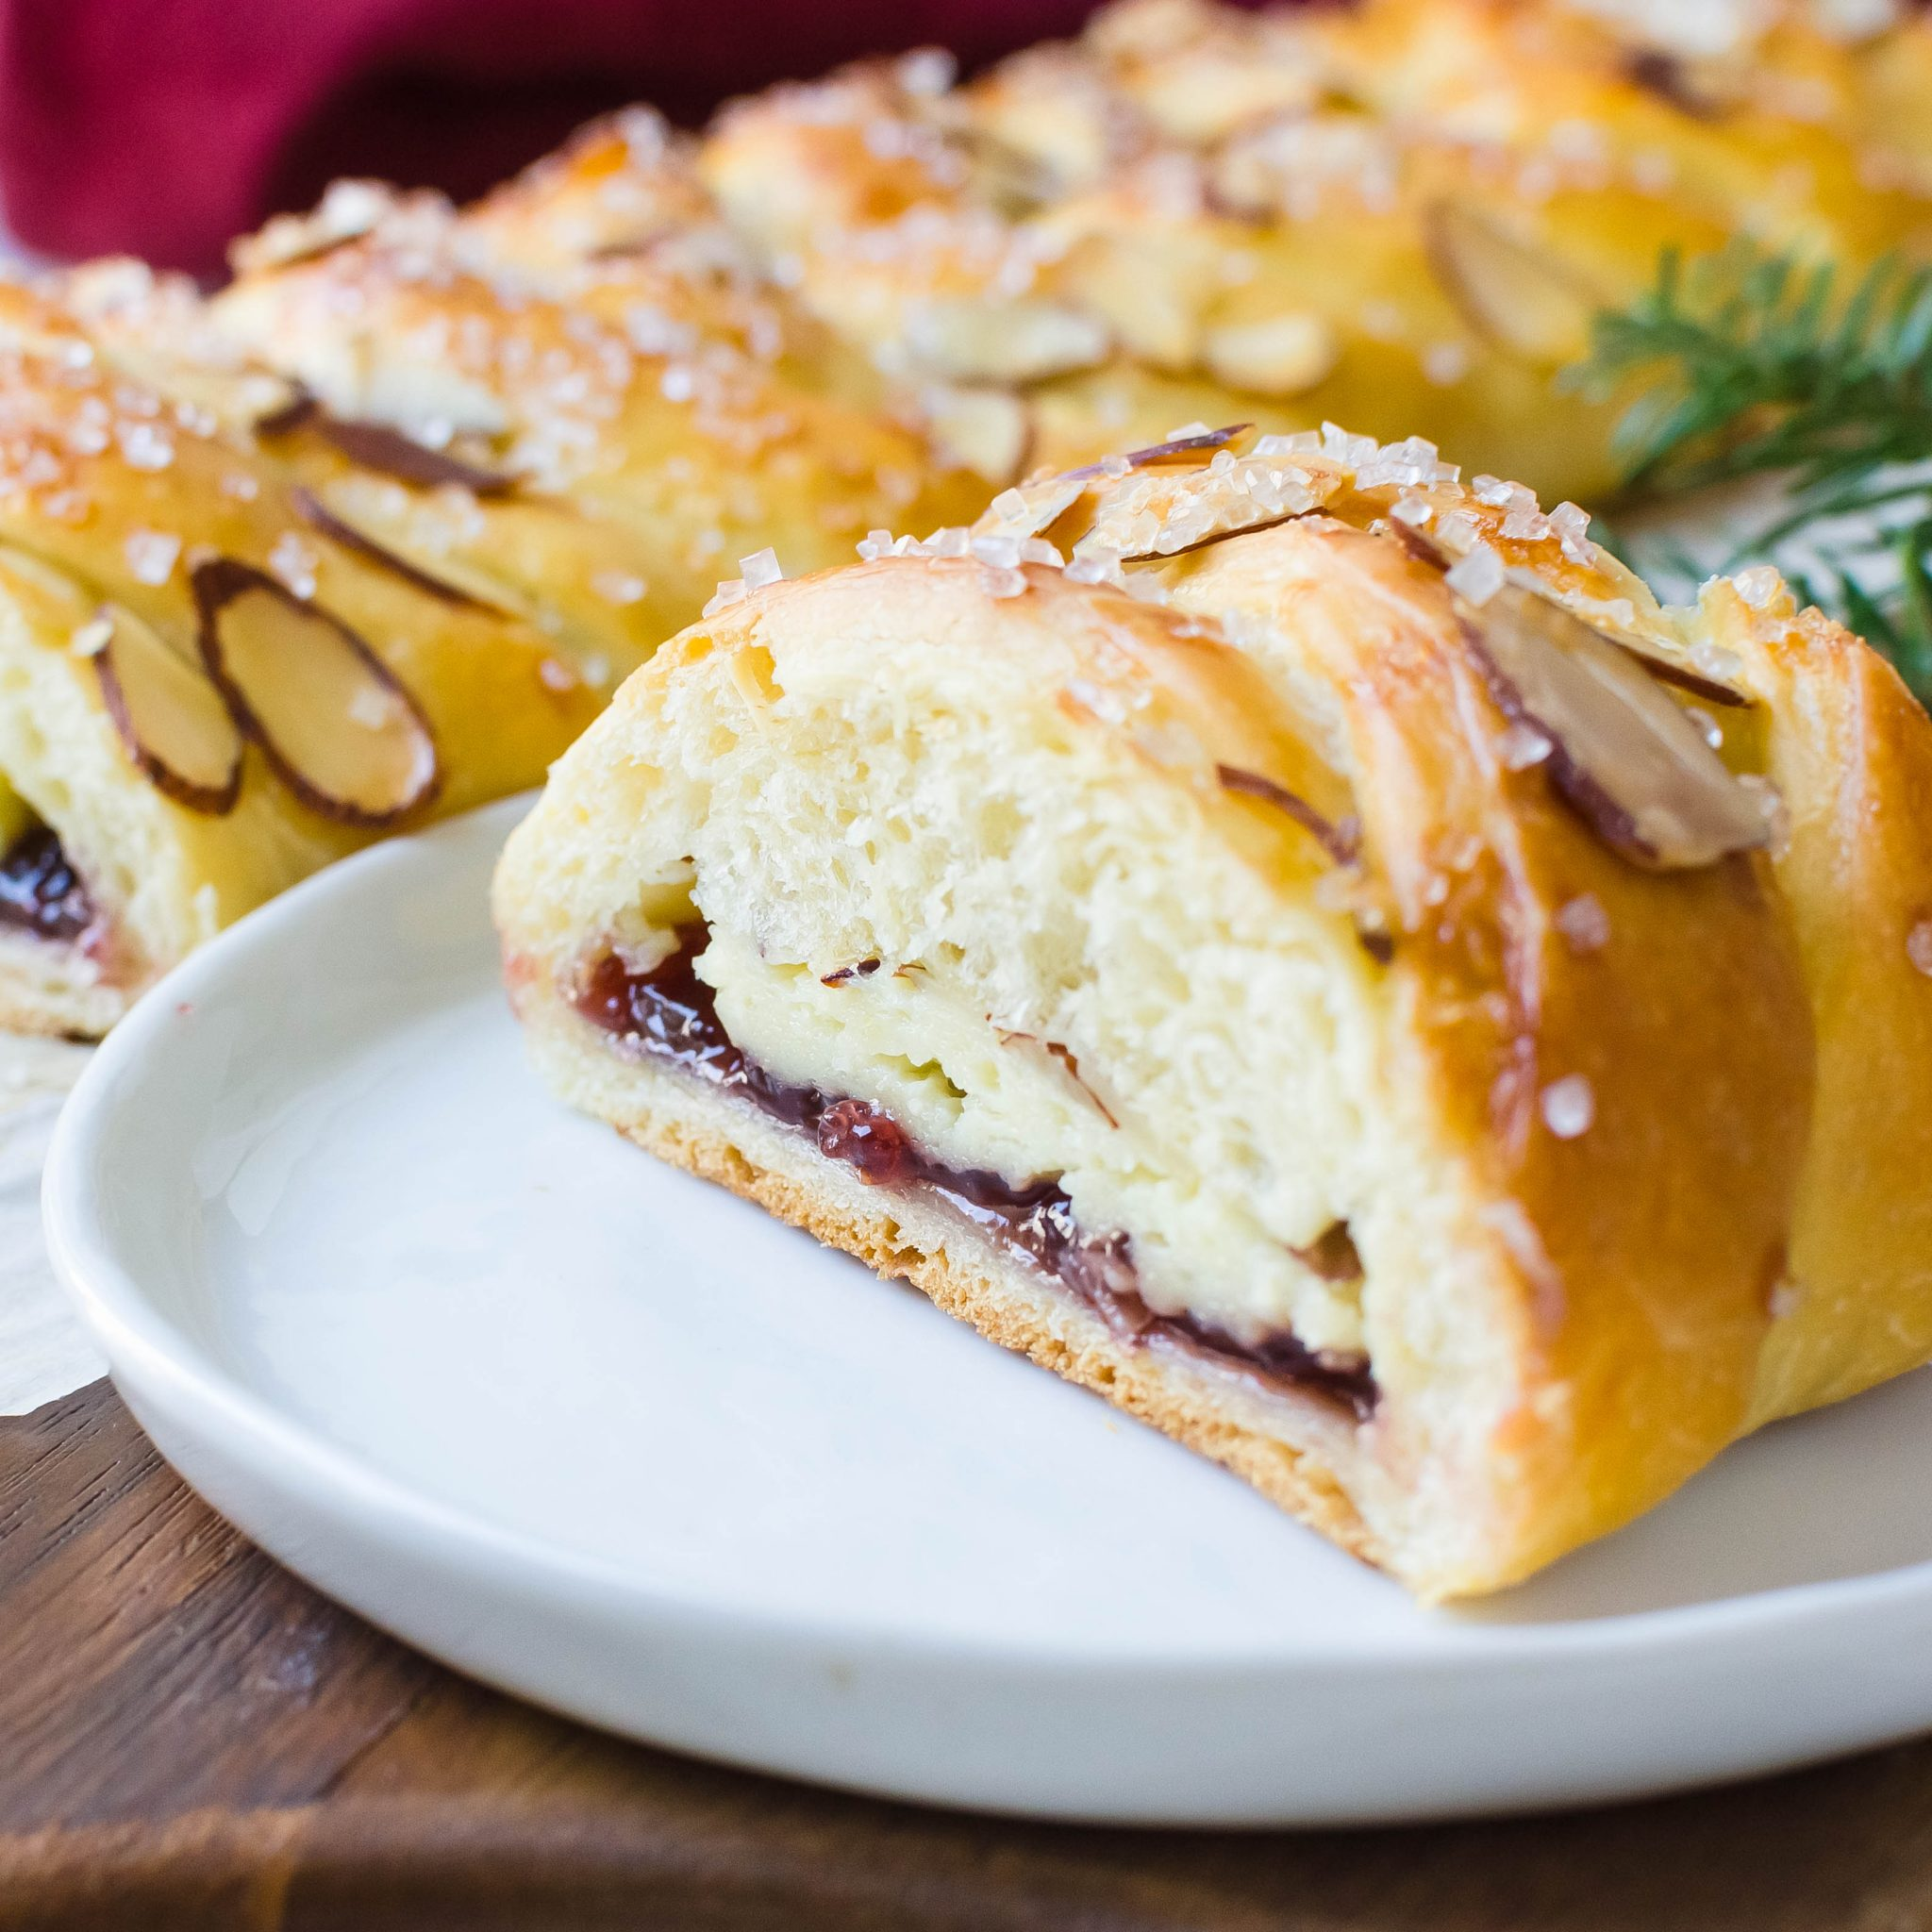 Raspberry Almond Cream Cheese Braid